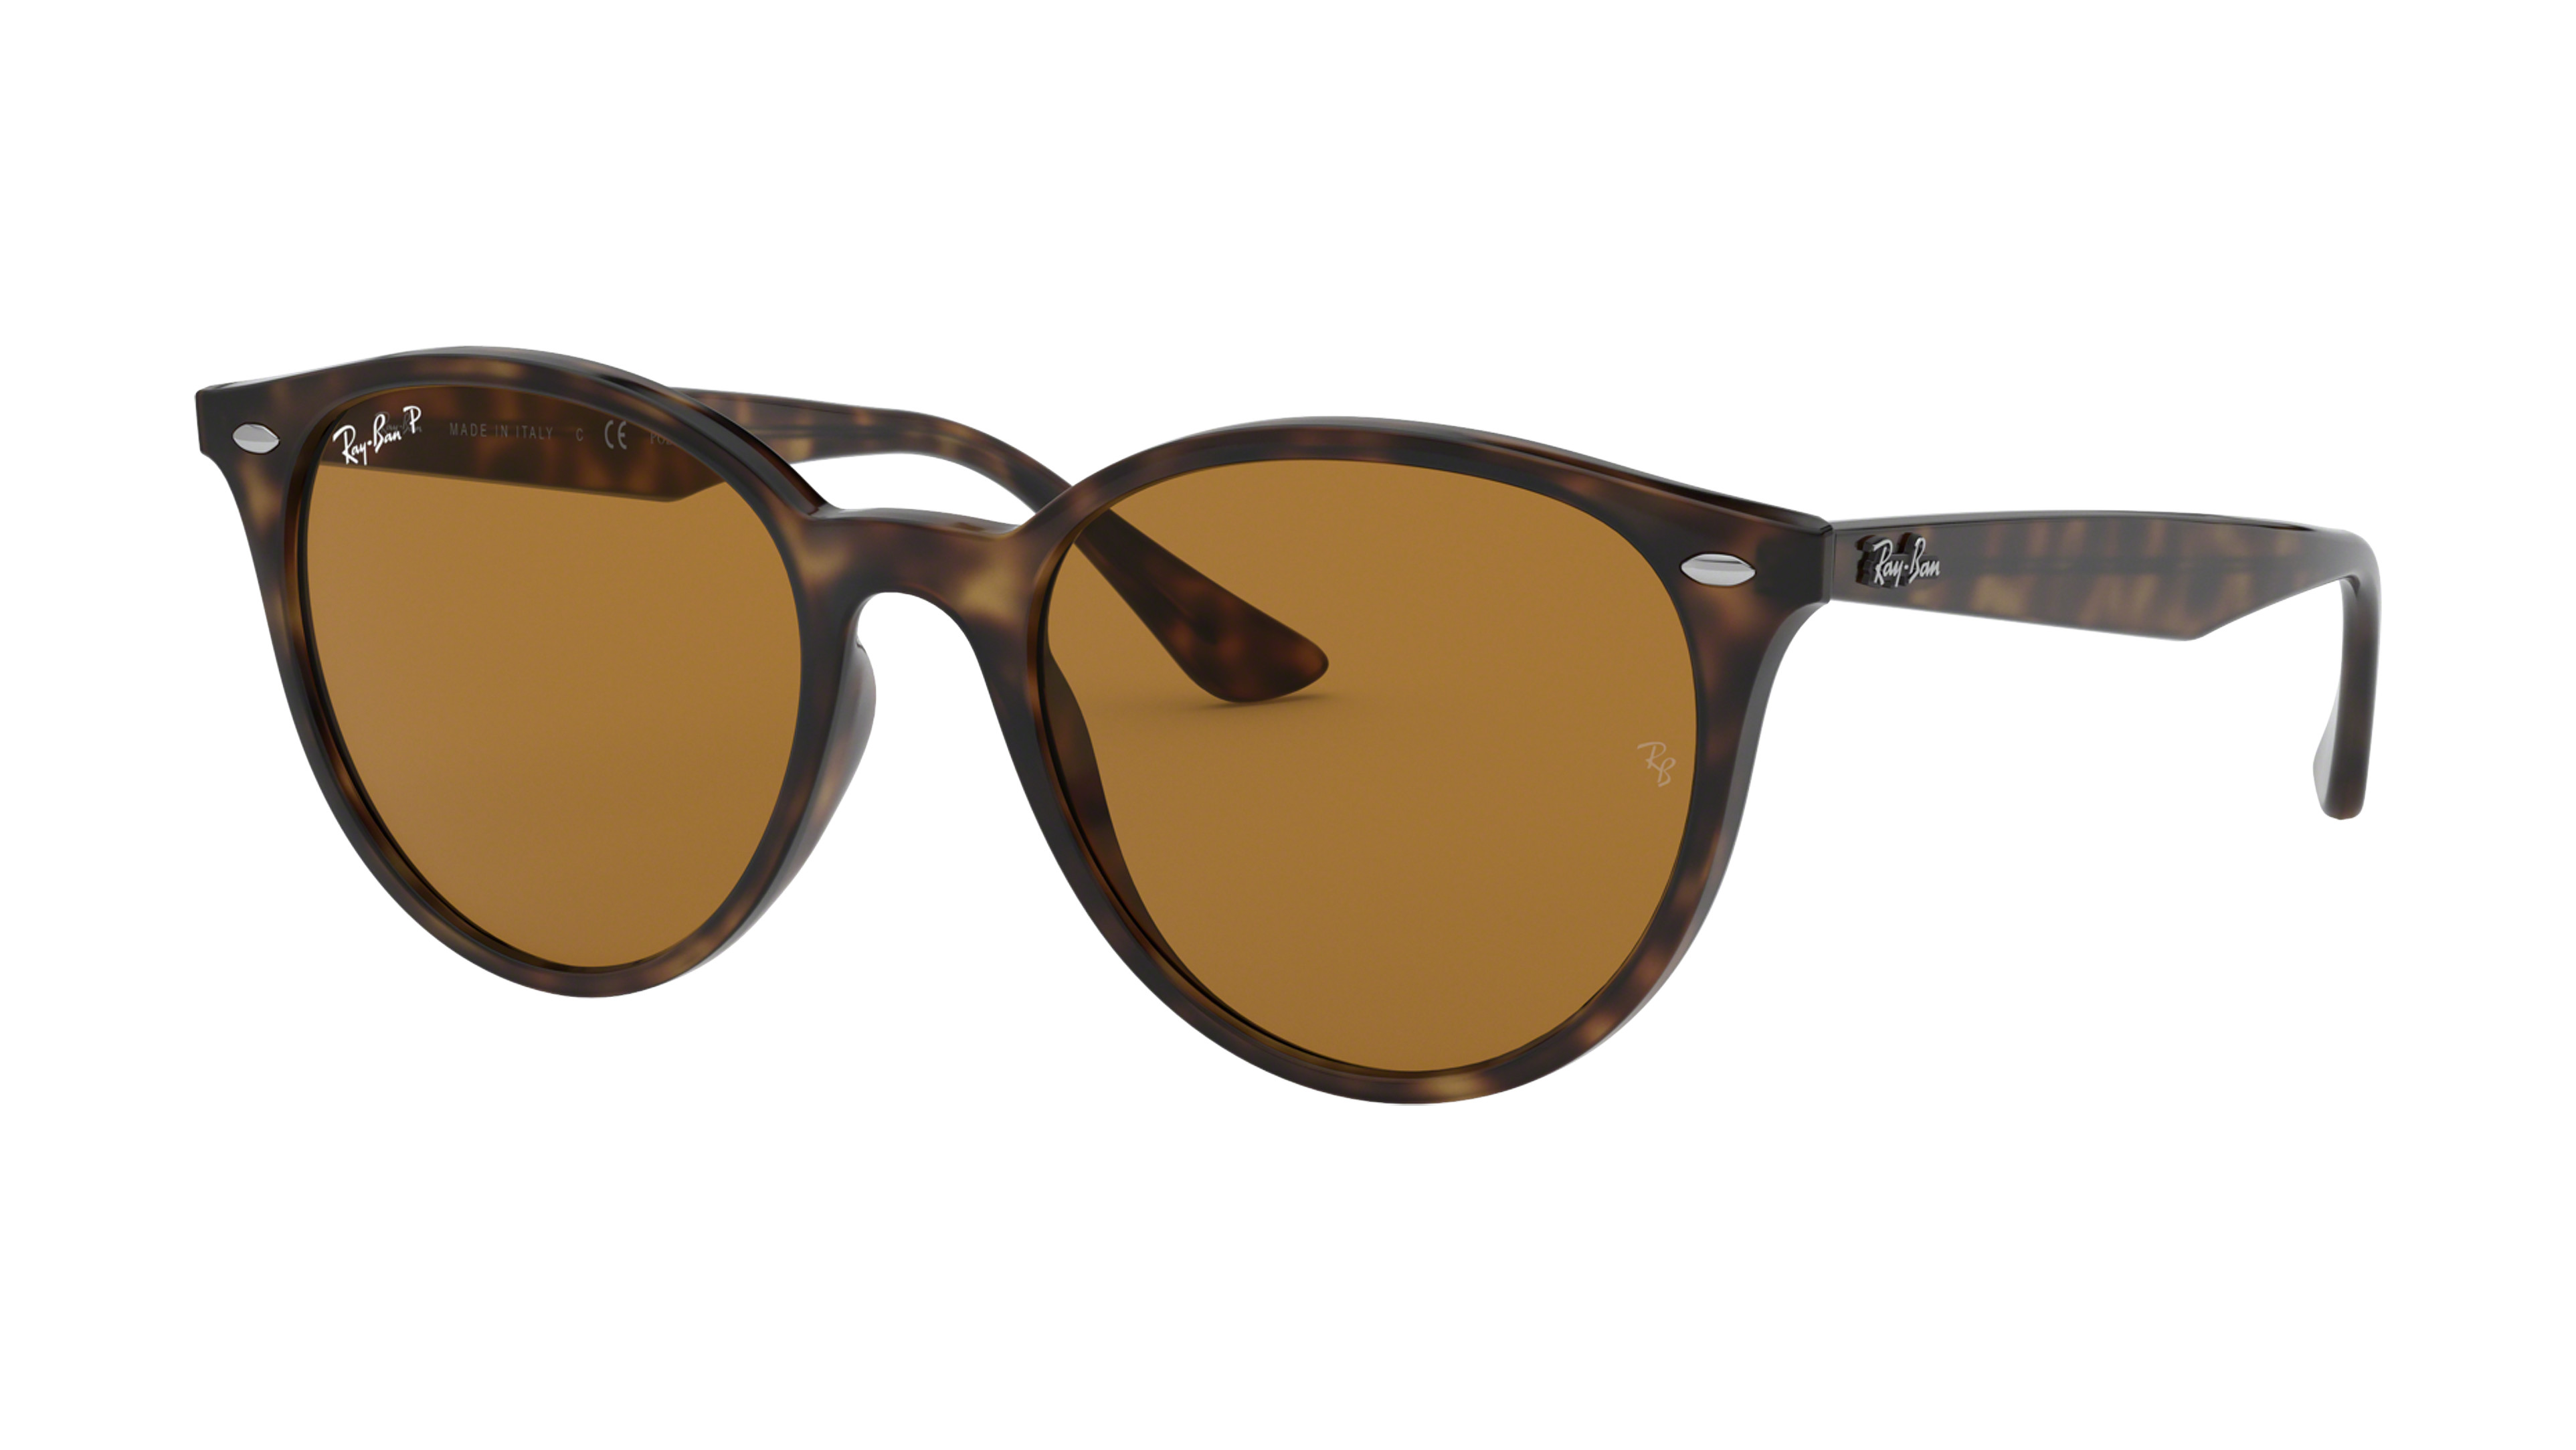 8056597071659-angle-Ray-Ban-Sonnenbrille-0RB4305-710-83